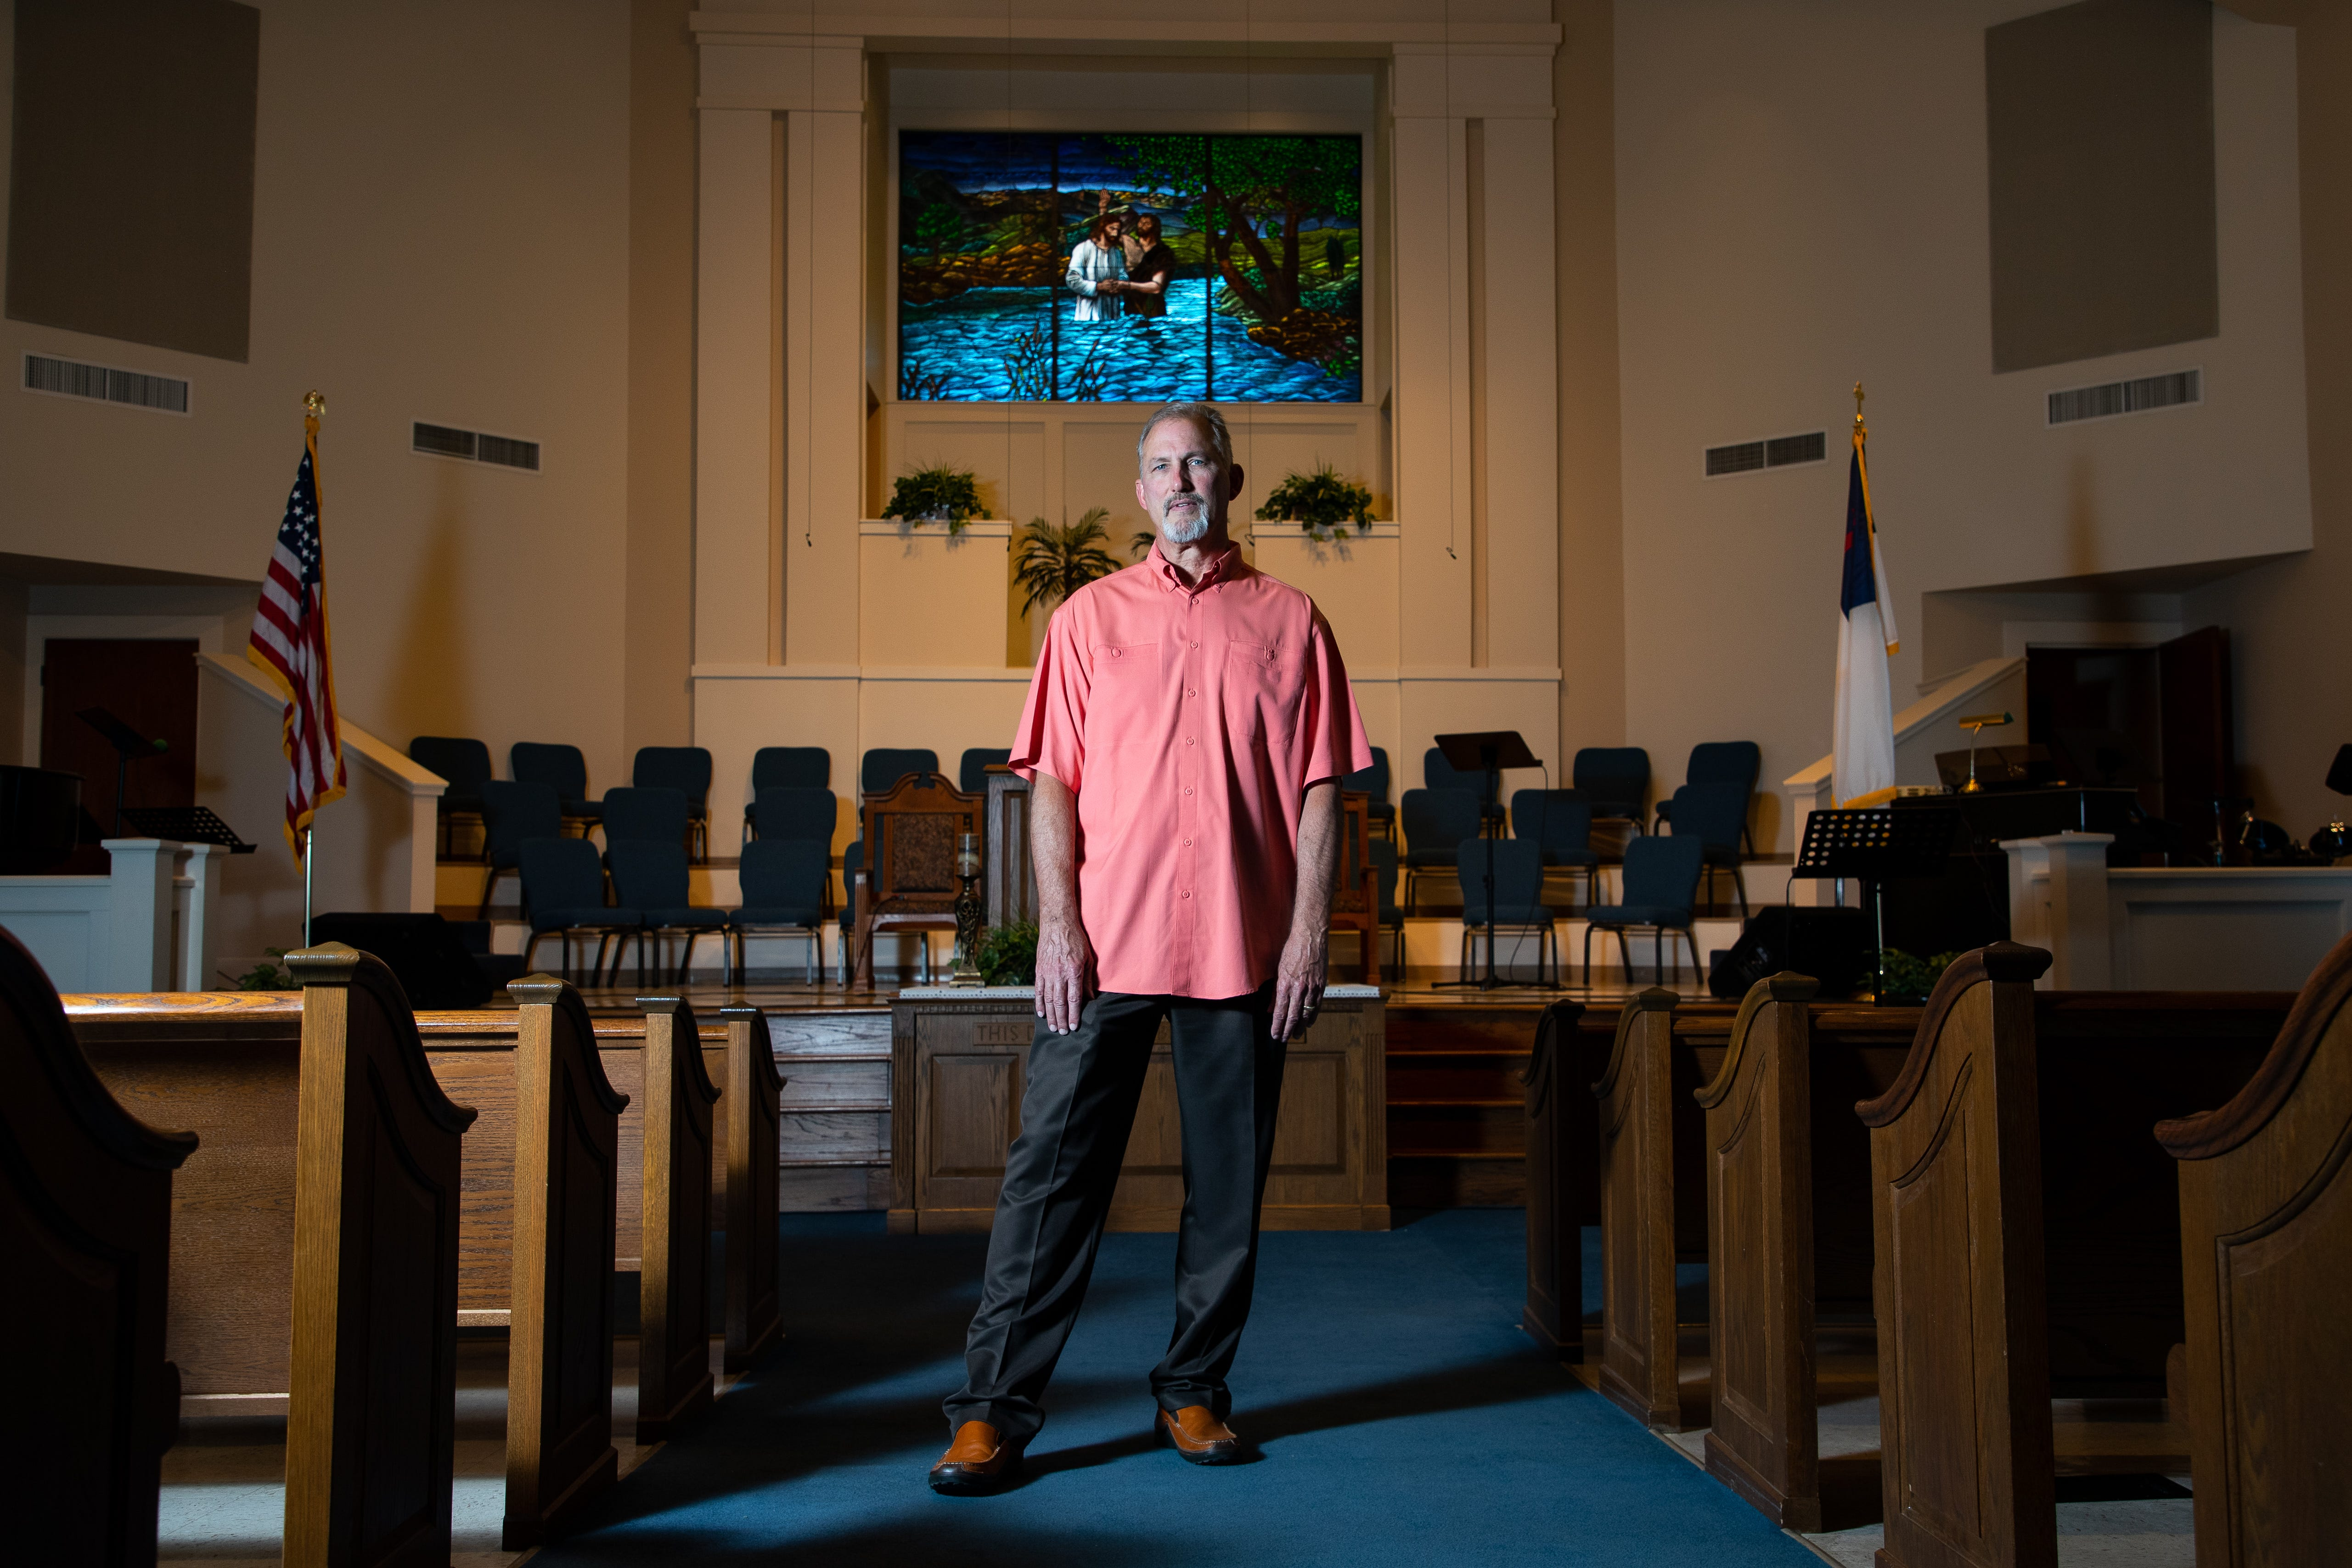 Pastor Mike Clements of First Baptist Church was among the first clergy leaders to arrive in Sutherland Springs after the 2017 mass shooting that took the lives of 25 plus an unborn child.